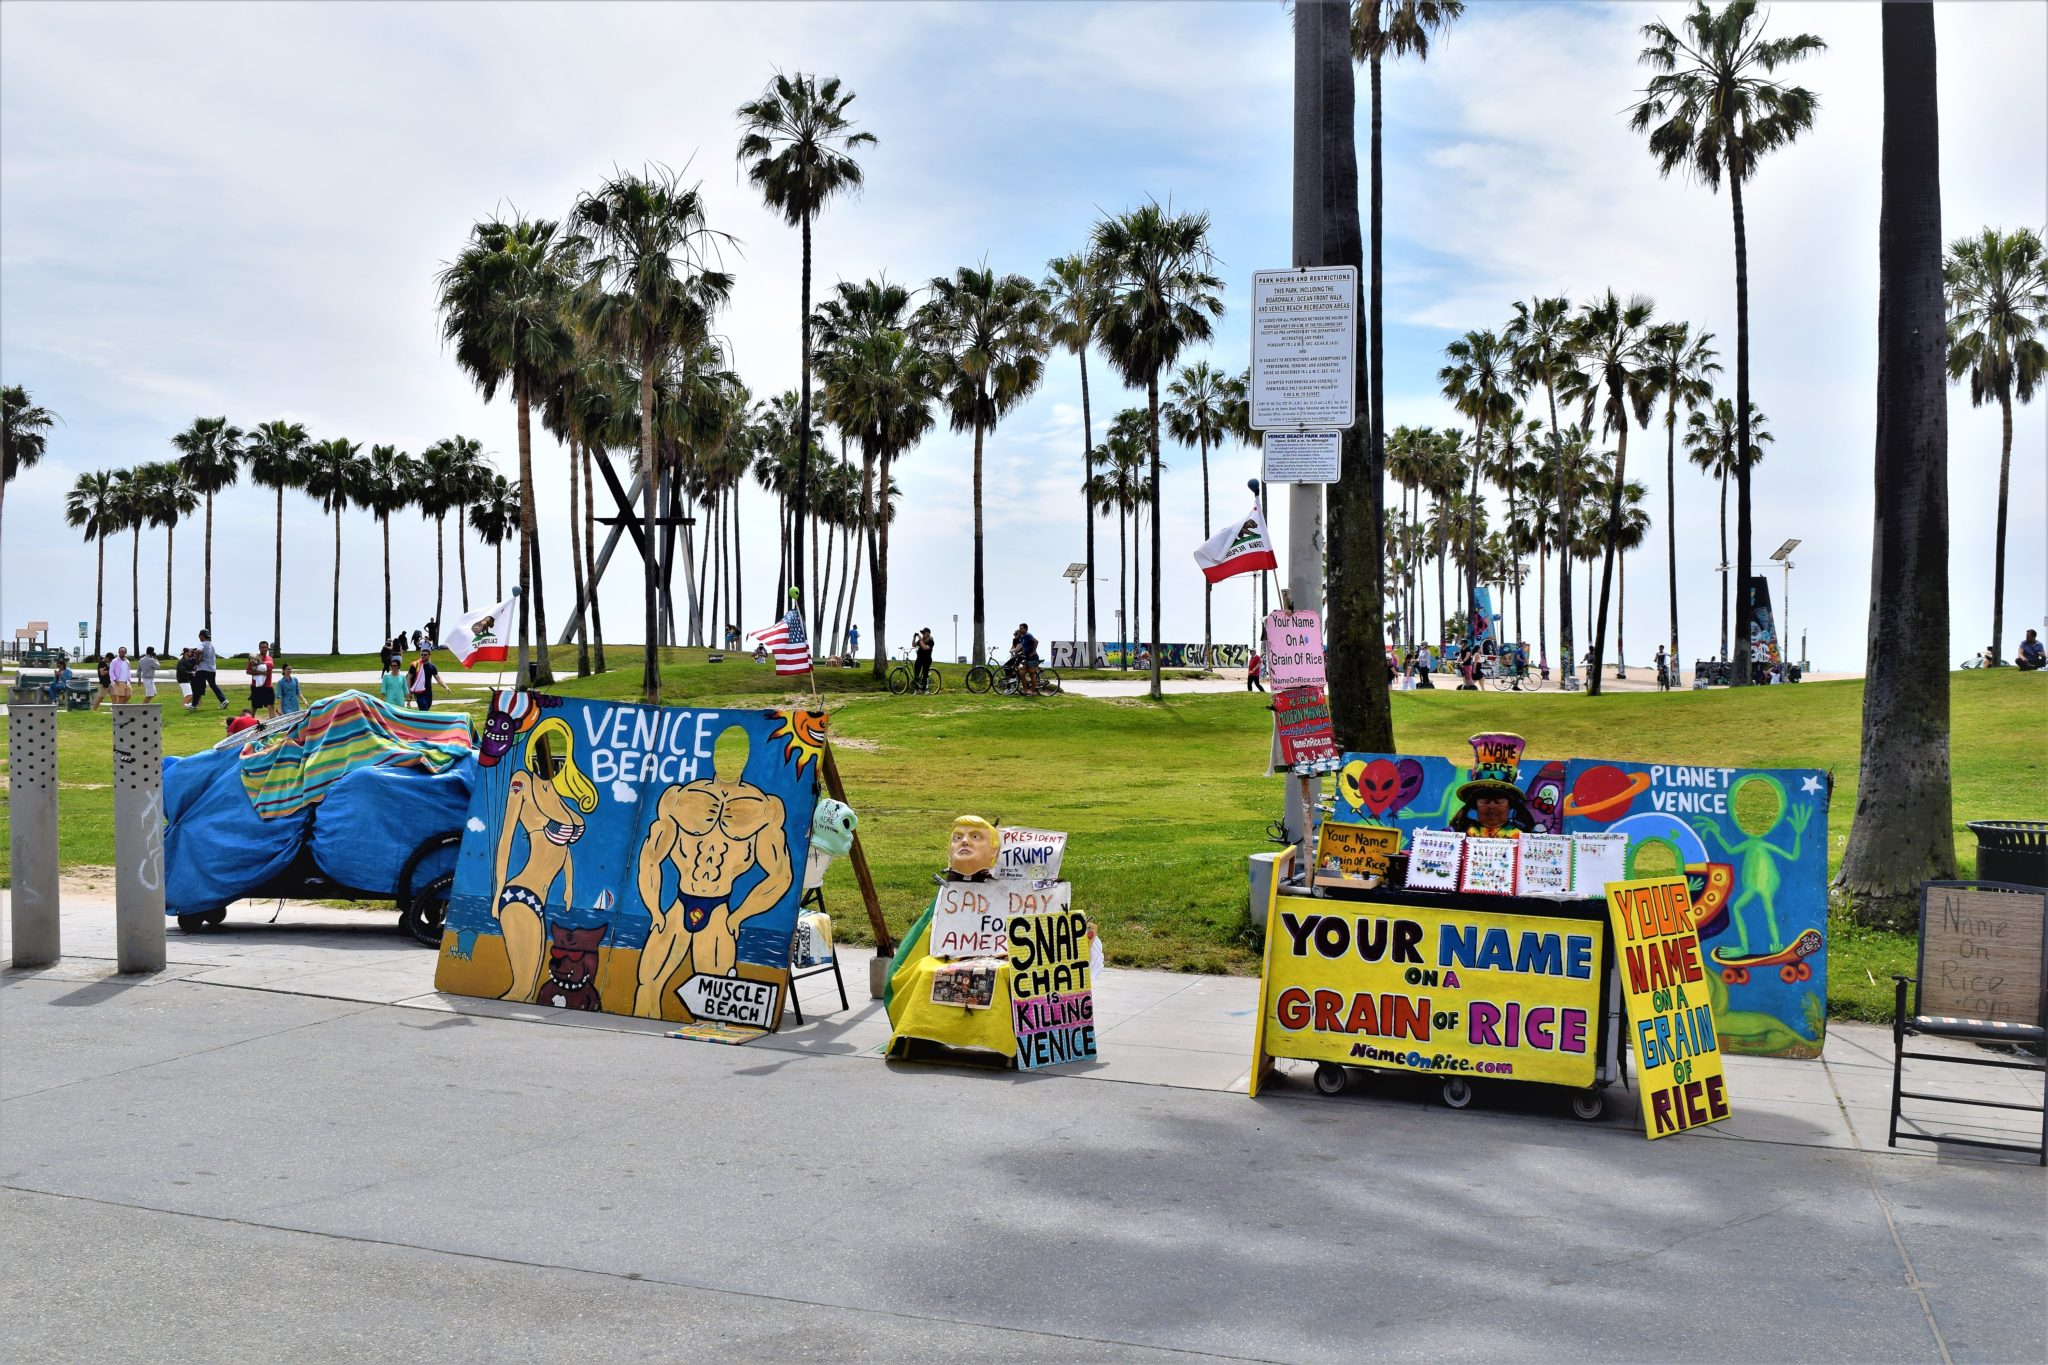 Venice beach, hop on hop off bus los angeles, california